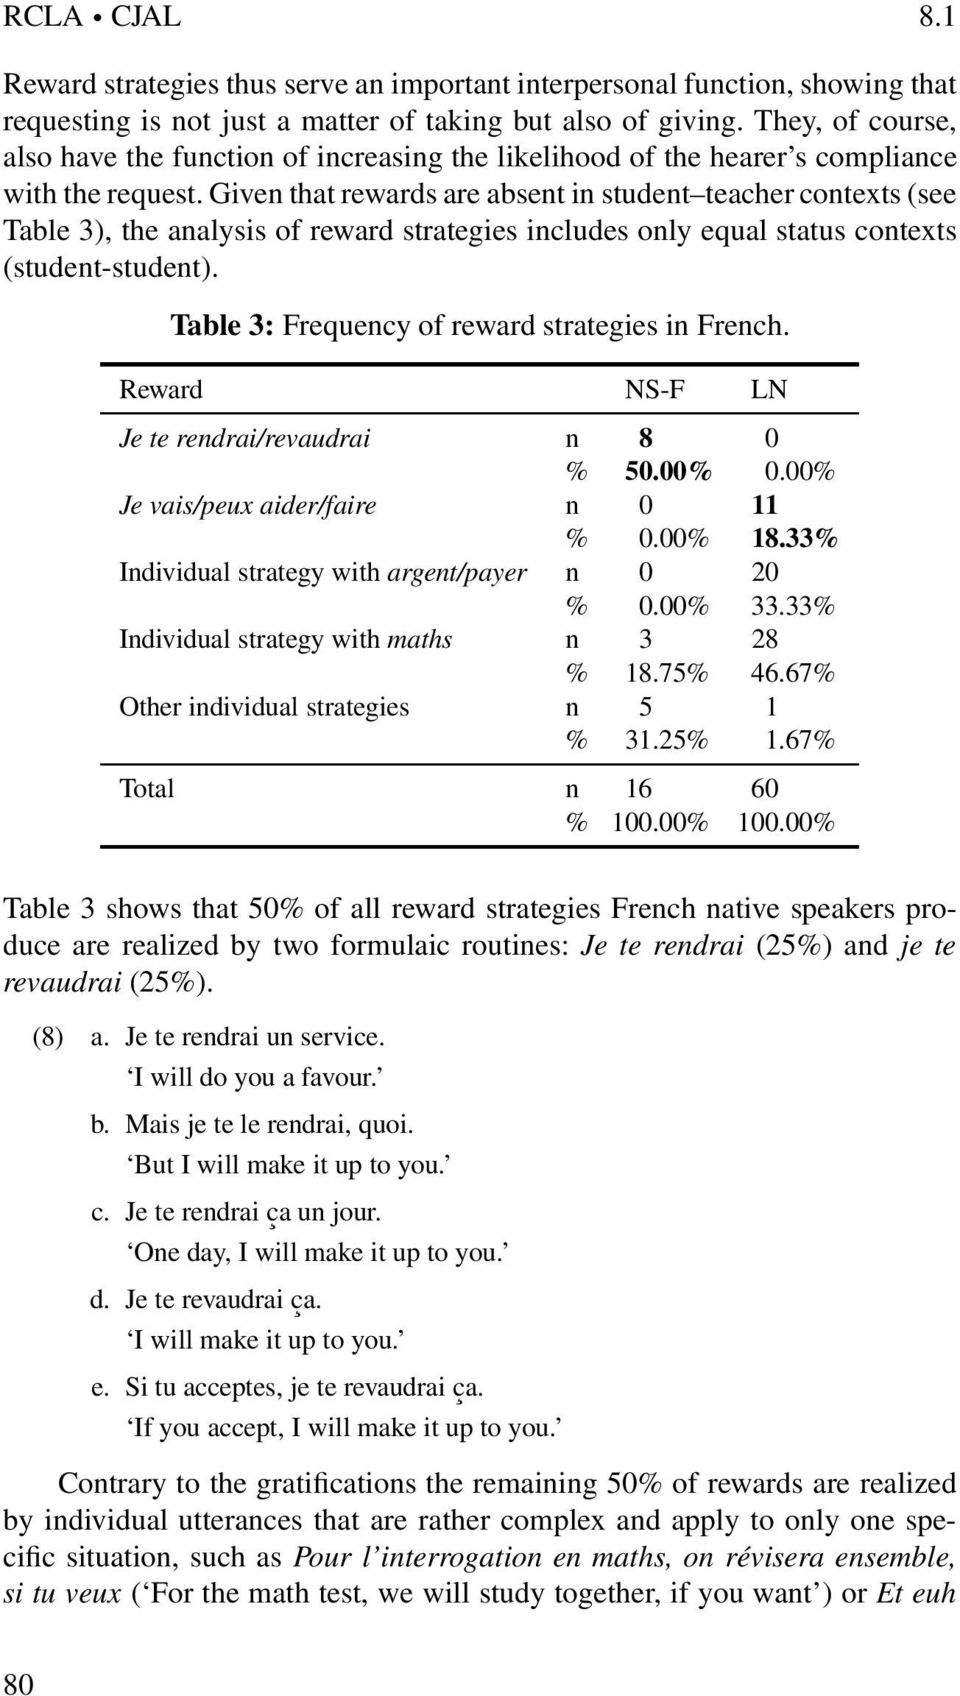 Given that rewards are absent in student teacher contexts (see Table 3), the analysis of reward strategies includes only equal status contexts (student-student).